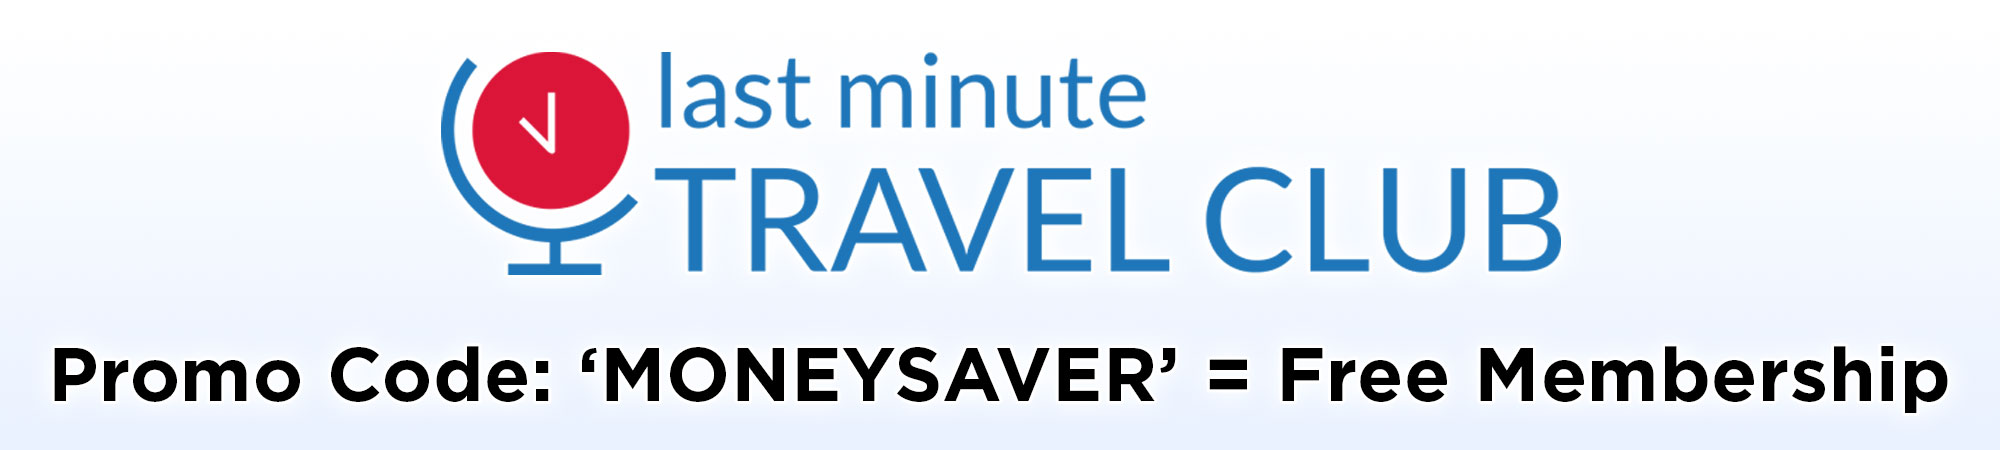 Last Minute Travel Club Promo Code